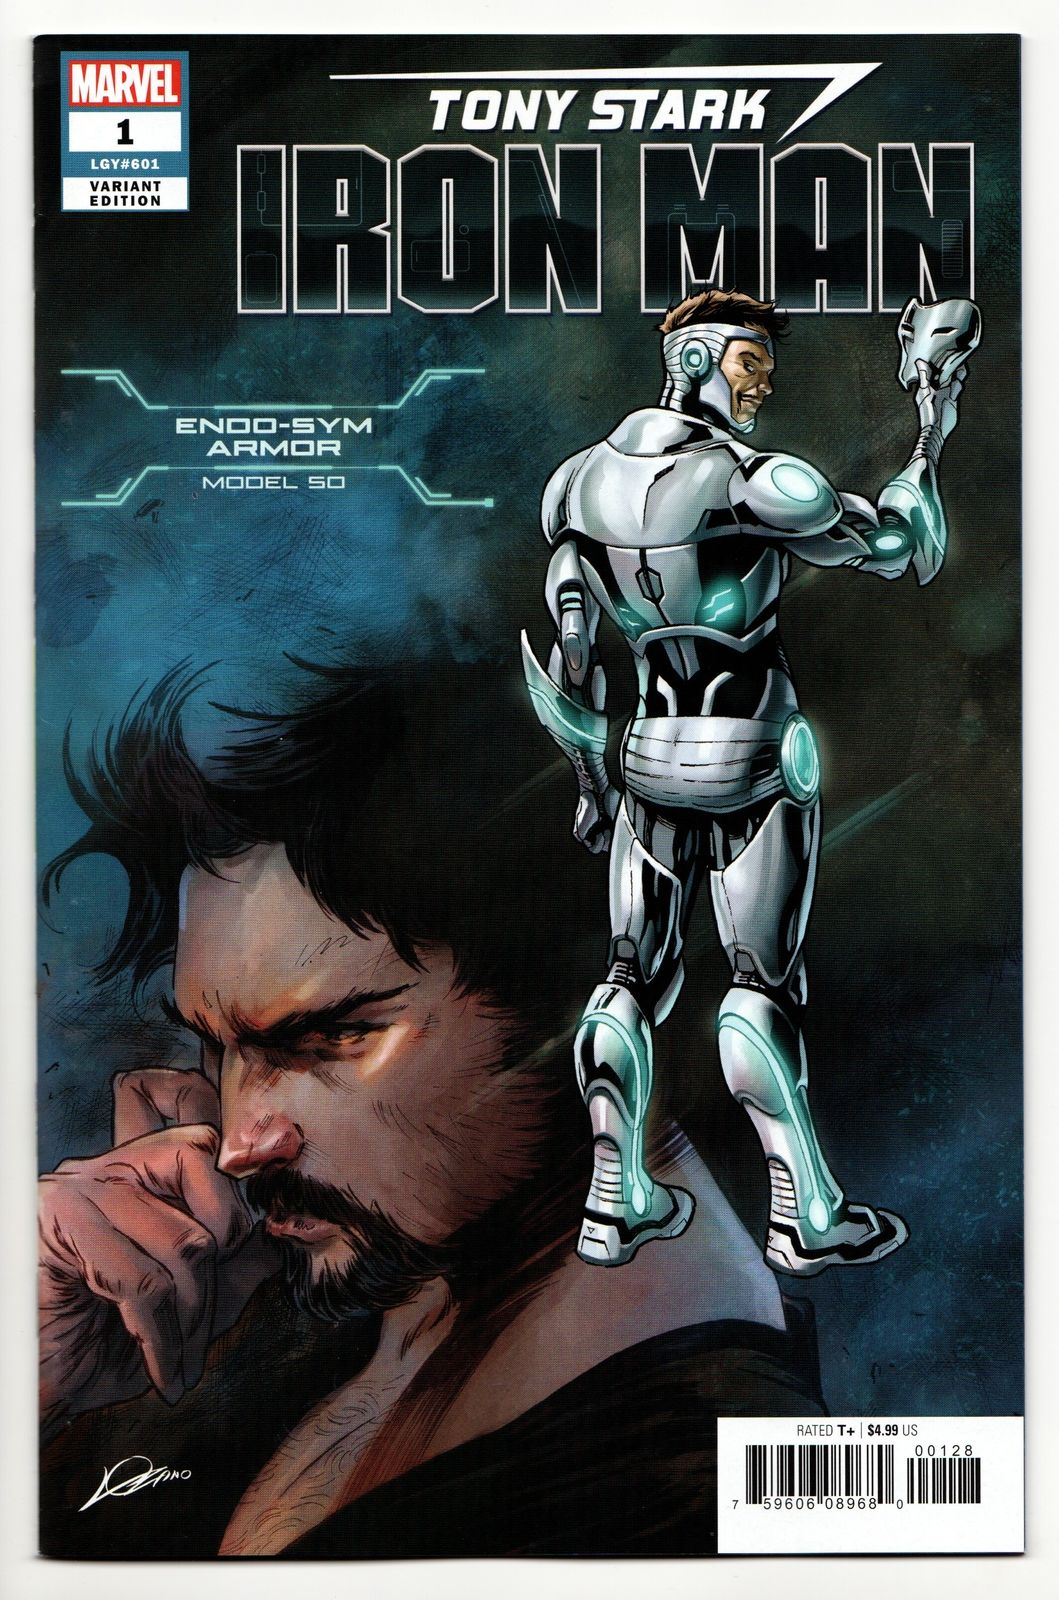 SUPERIOR IRON MAN #4 STANDARD COVER